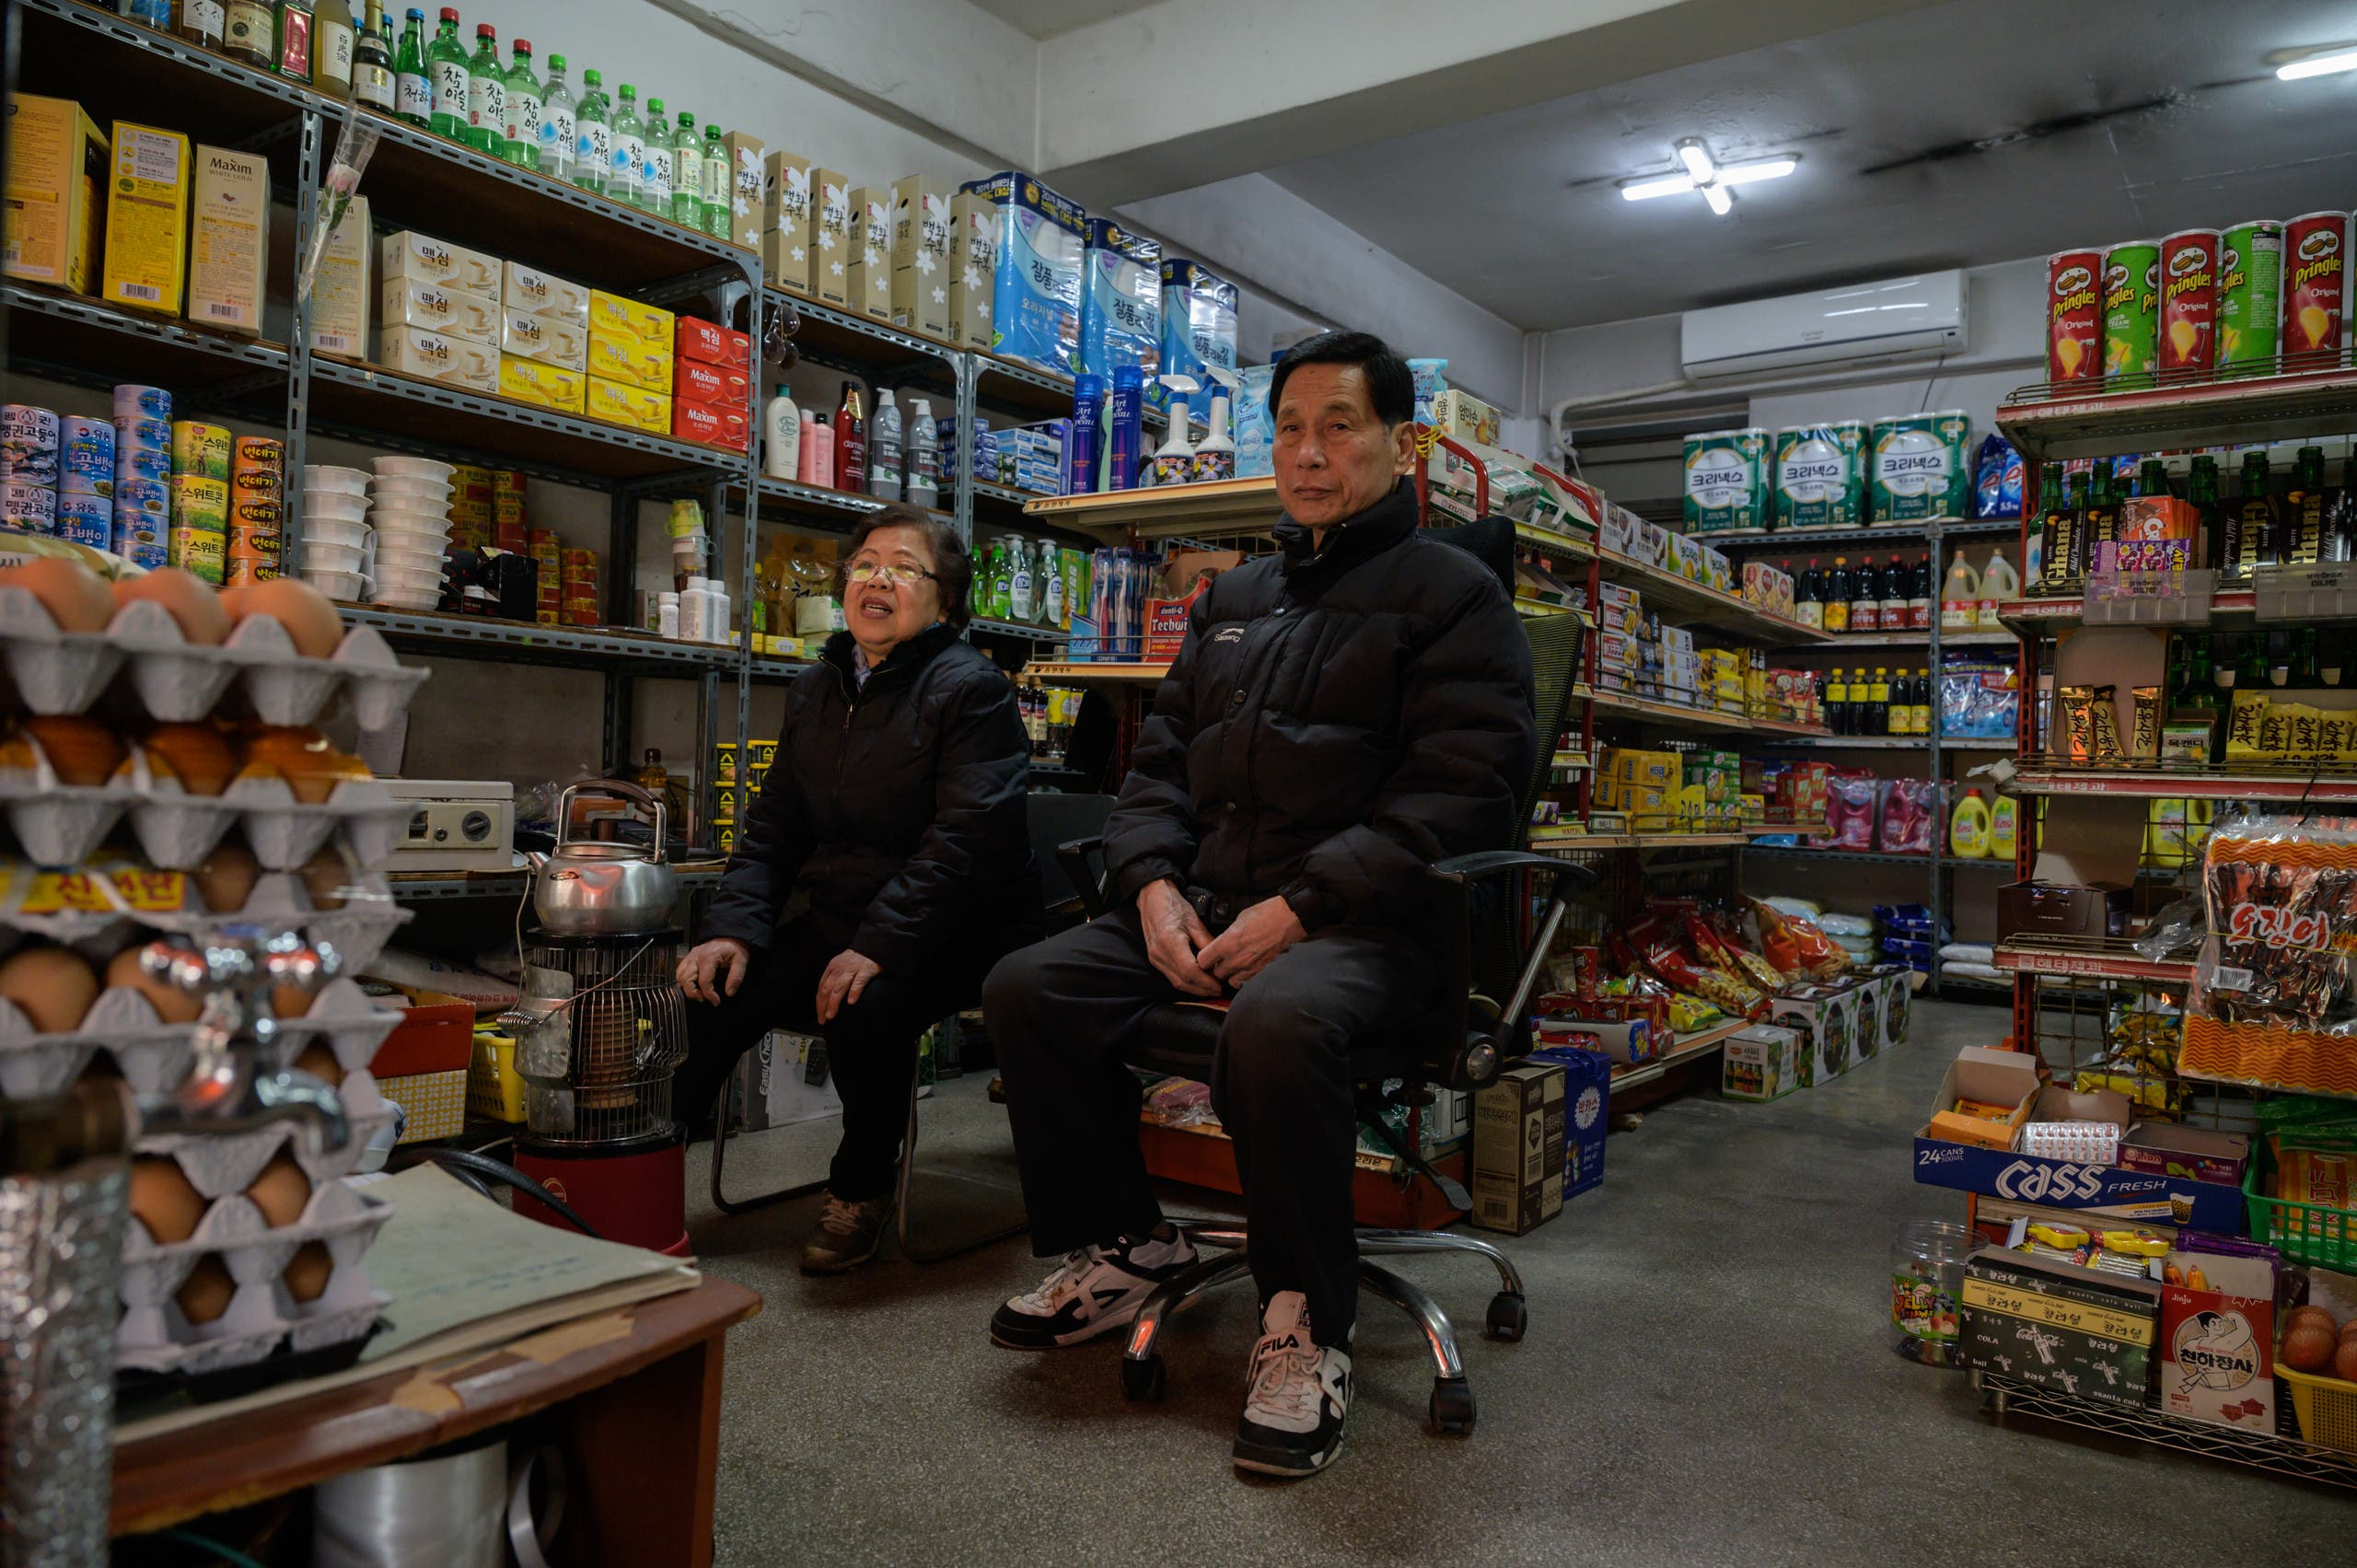 Owner Kim Kyung-soon (L) sits in the Pig Rice supermarket in Seoul on February 13, 2020. (AFP)